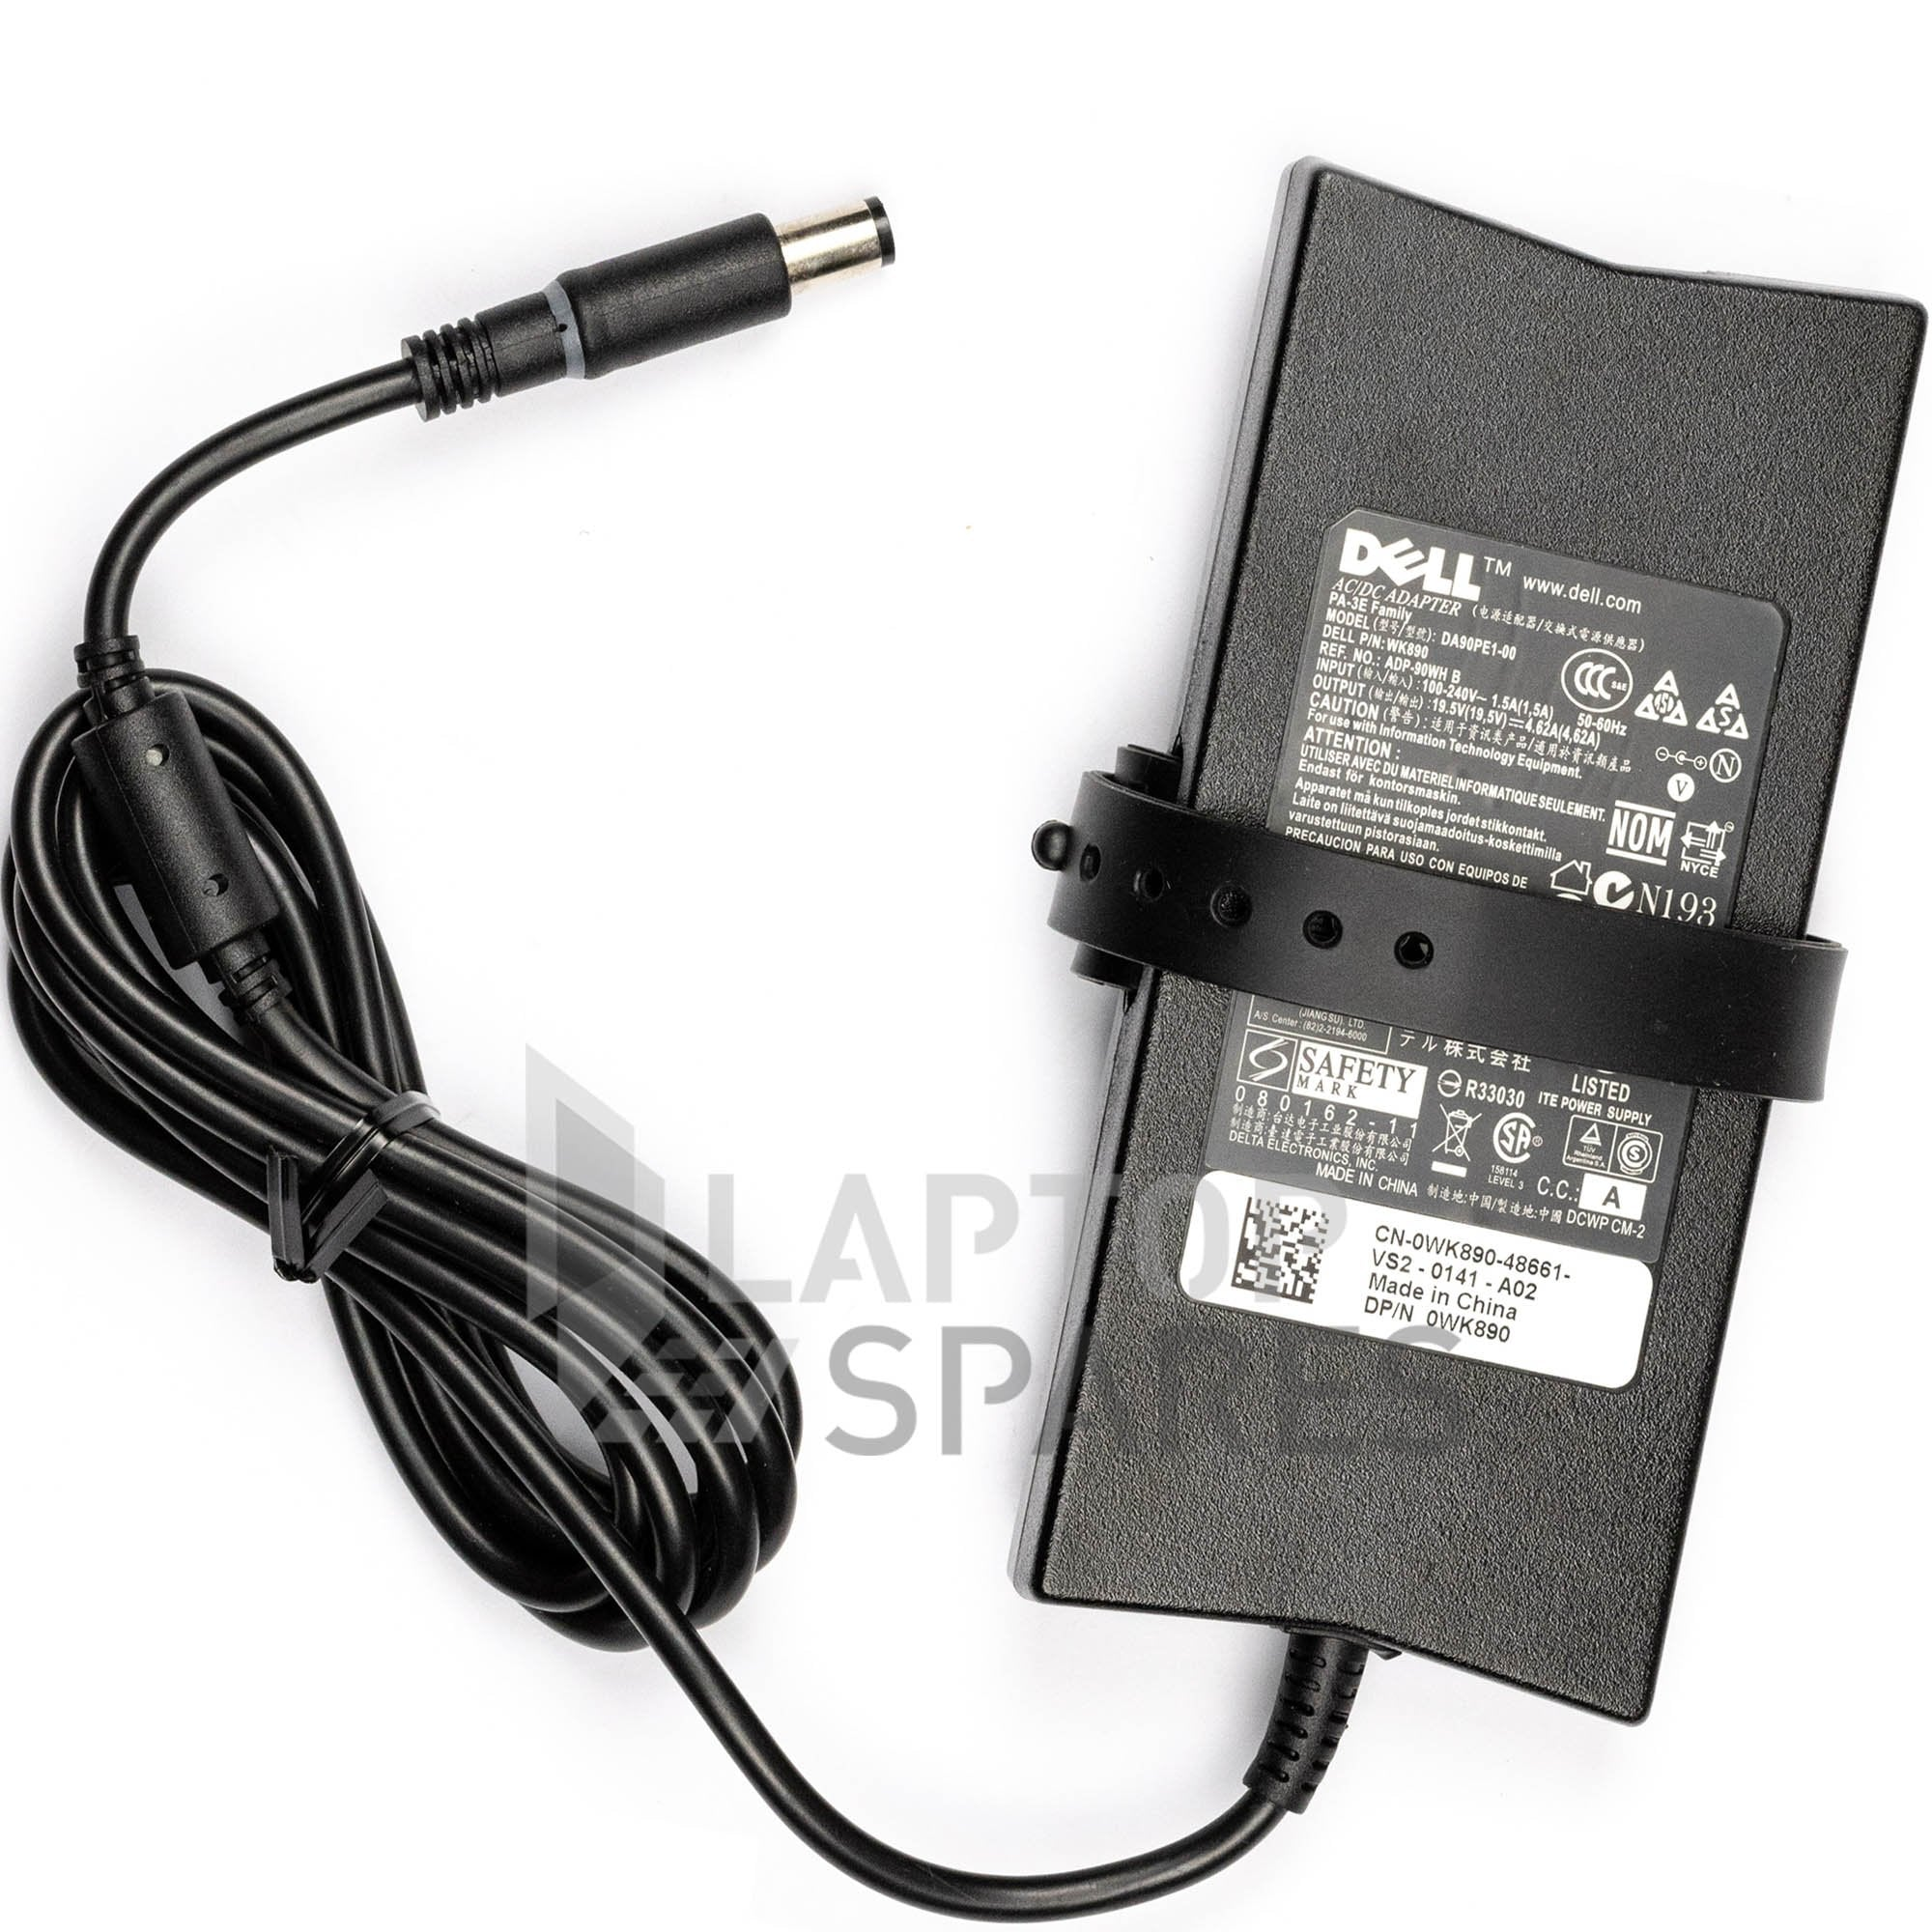 Dell 09T215 0W6KV 3T6XF Laptop Slim AC Adapter Charger